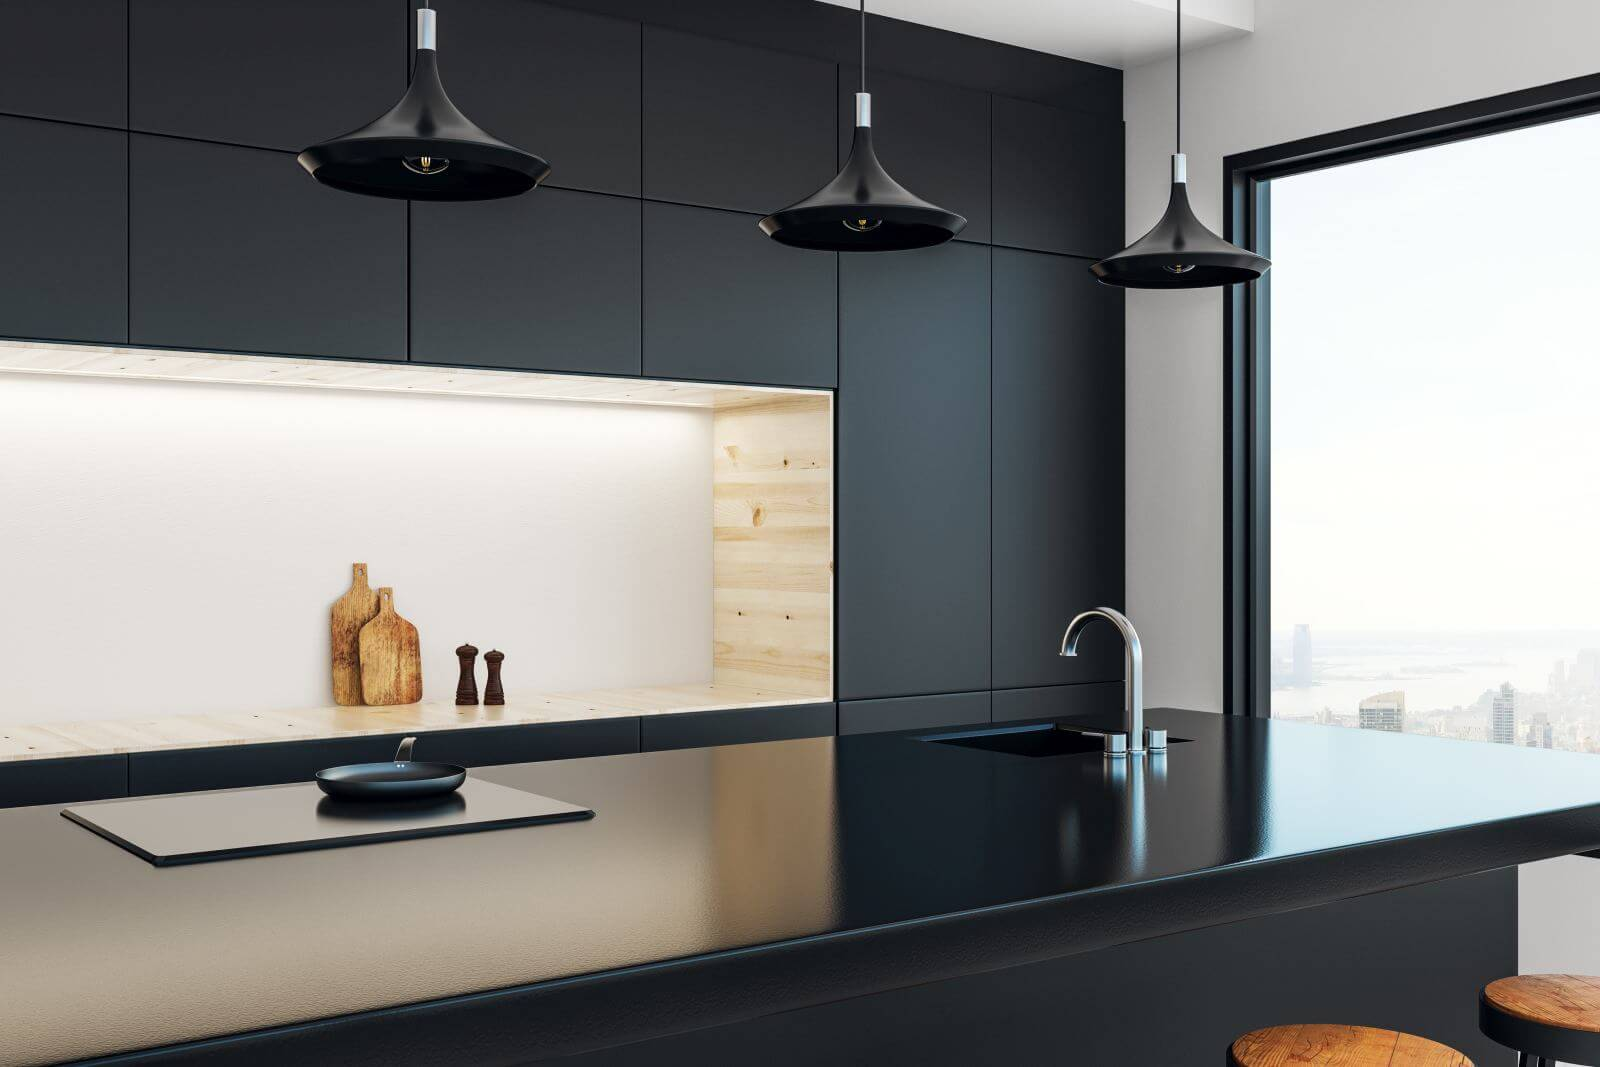 Minimalistic kitchen studio interior with panoramic New York city view and daylight. 3D Rendering